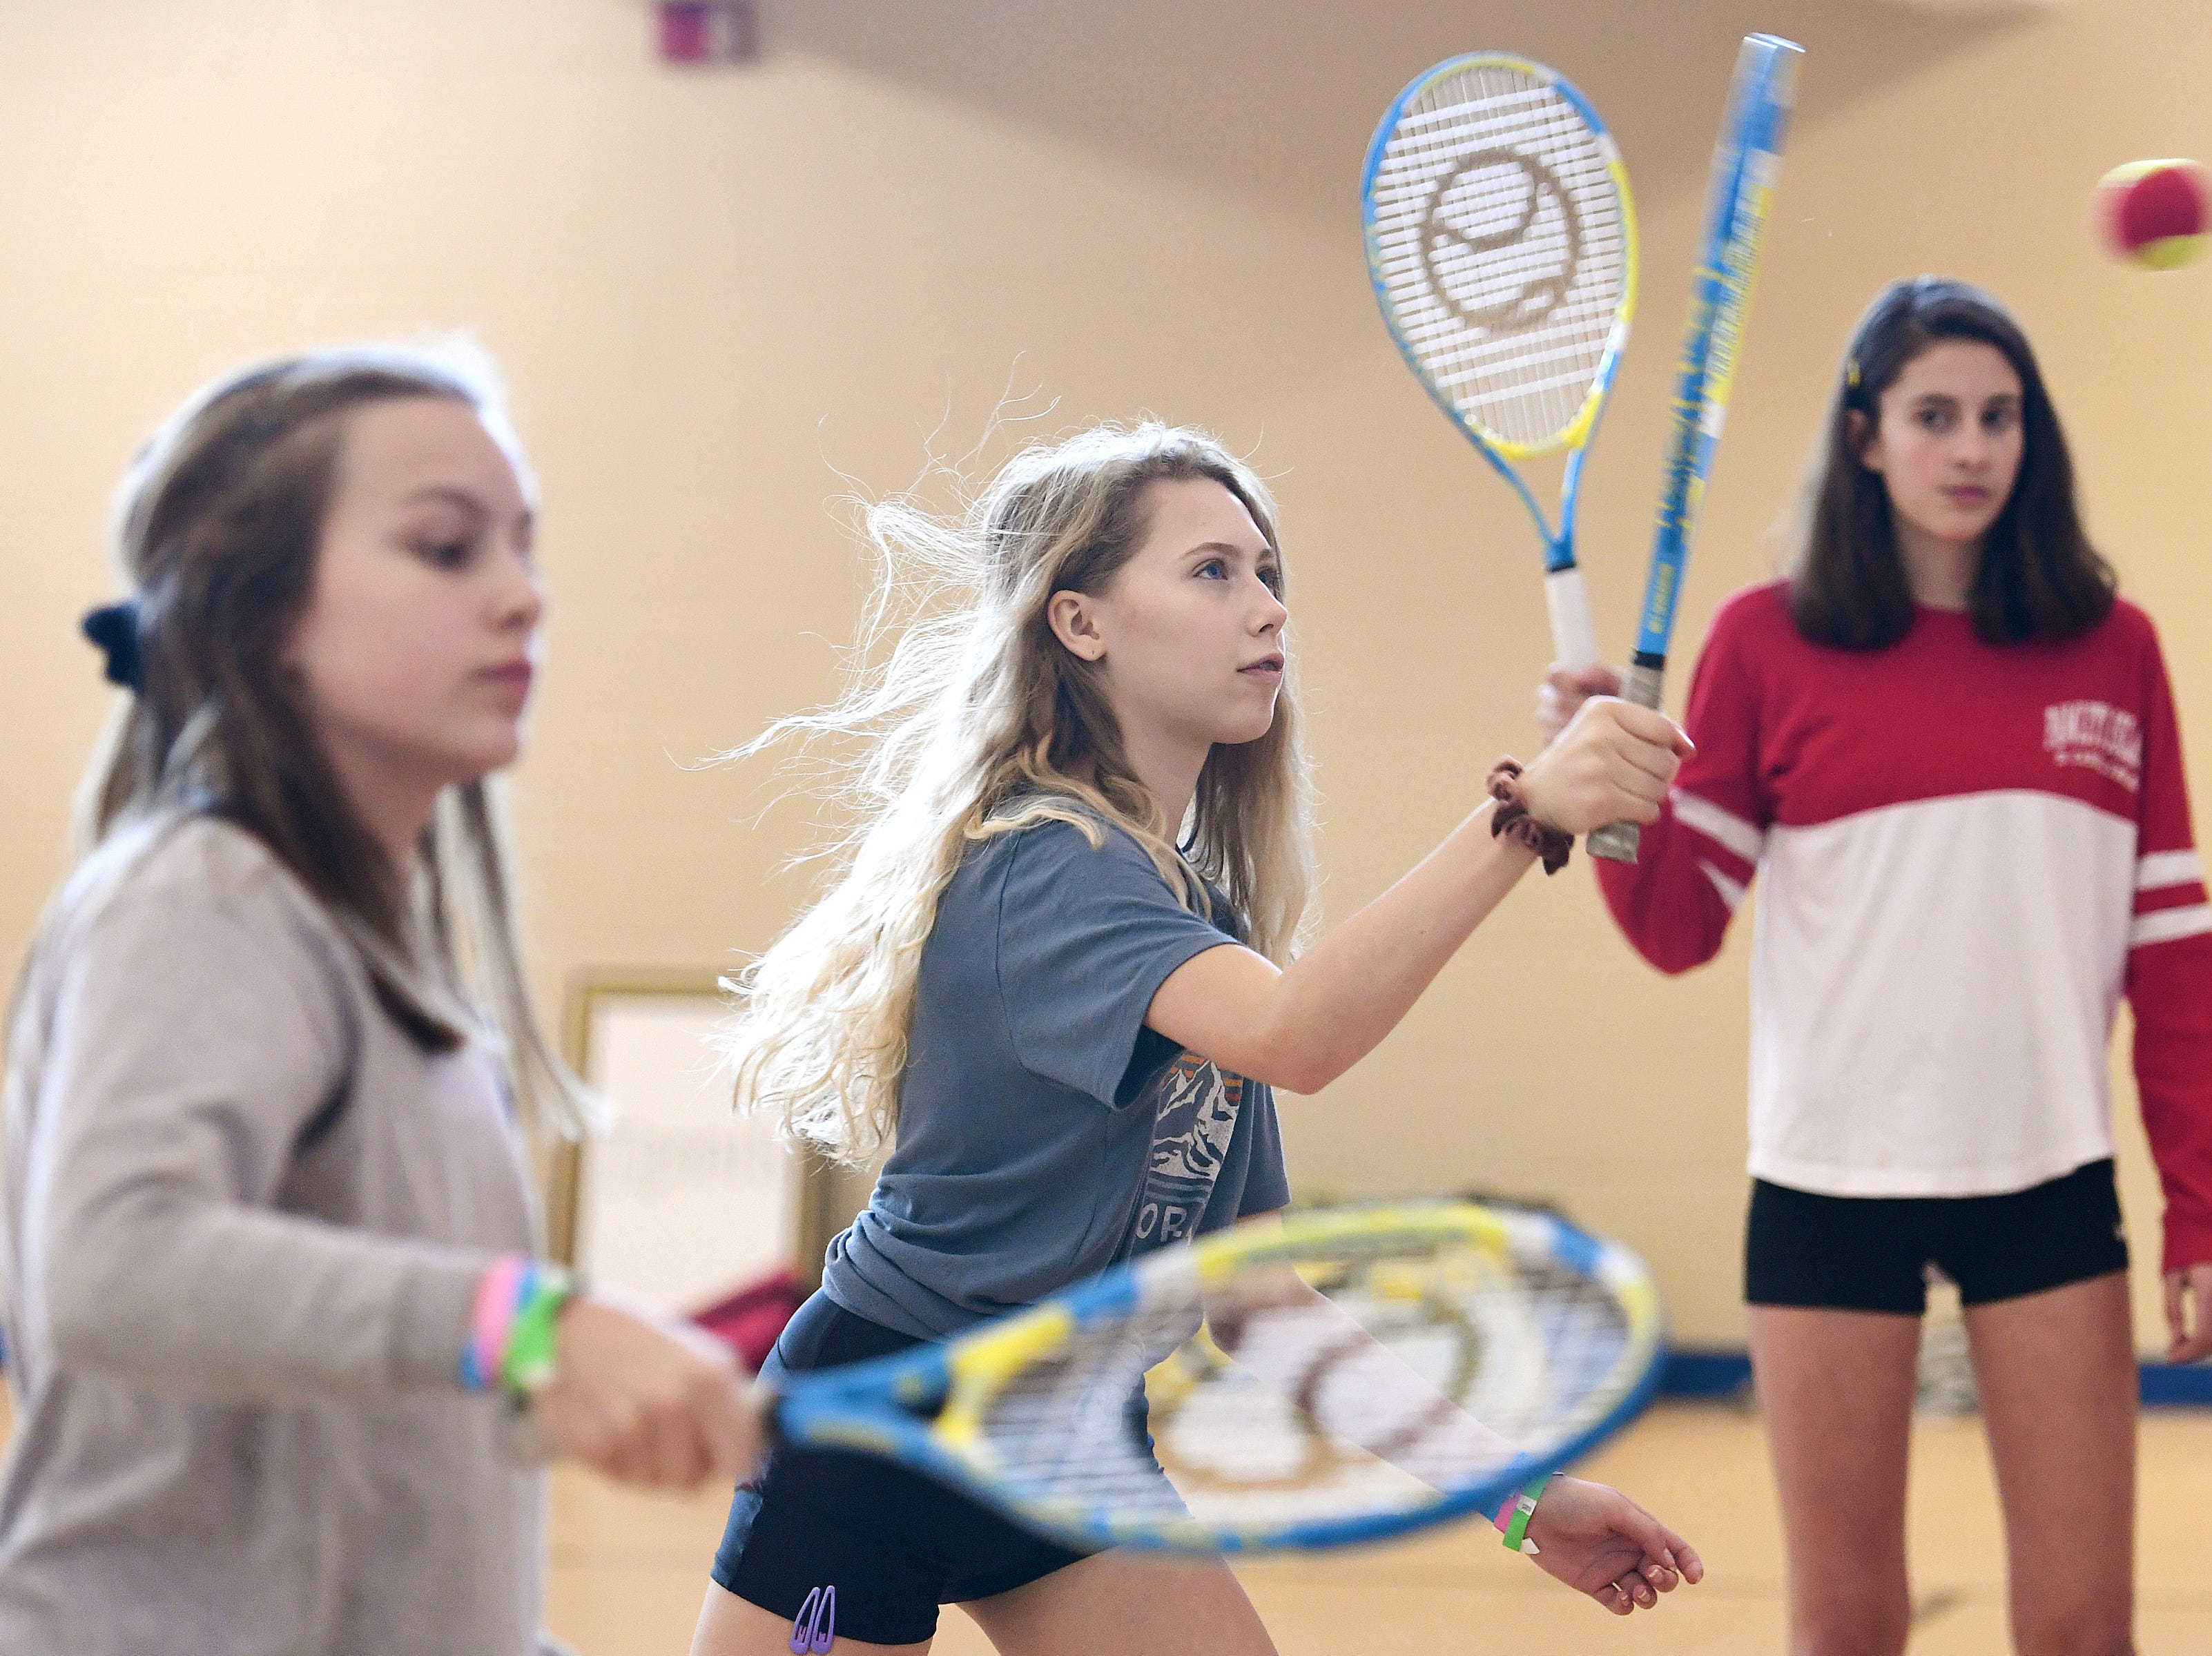 From left: Isabelle Kelley, 13, Maya Hannon, 13, and Ramona Eldridge, 14, work on returning tennis balls during a clinic at the National Girls and Women in Sports Day at UNC Asheville on Feb. 16, 2019. The clinic, hosted by Asheville Parks and Recreation and Buncombe County Recreation Services introduced girls to different sports of their choice throughout the morning.